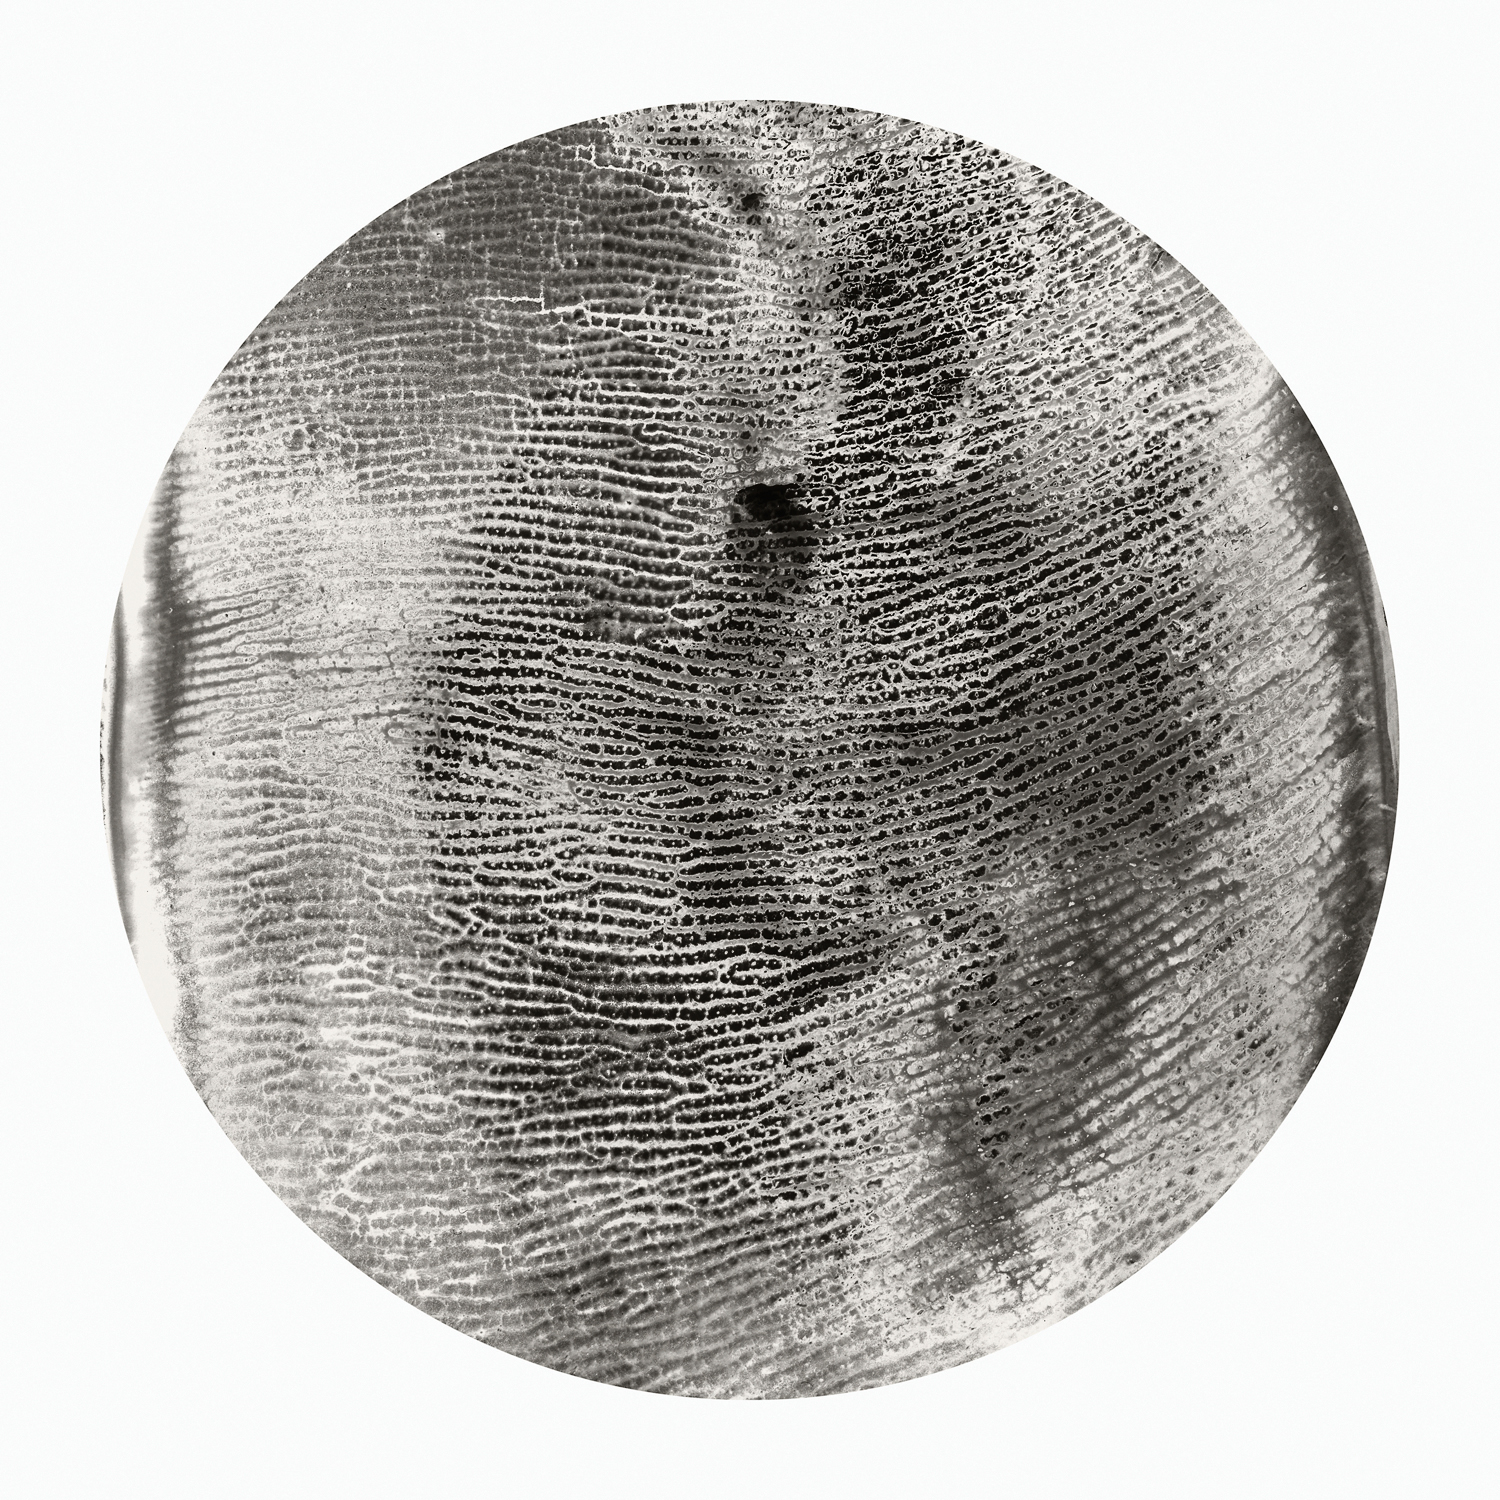 Tracy Longley Cook, Topography #2, 2012. Pigment print, 30 x 30 inches. Courtesy of the artist